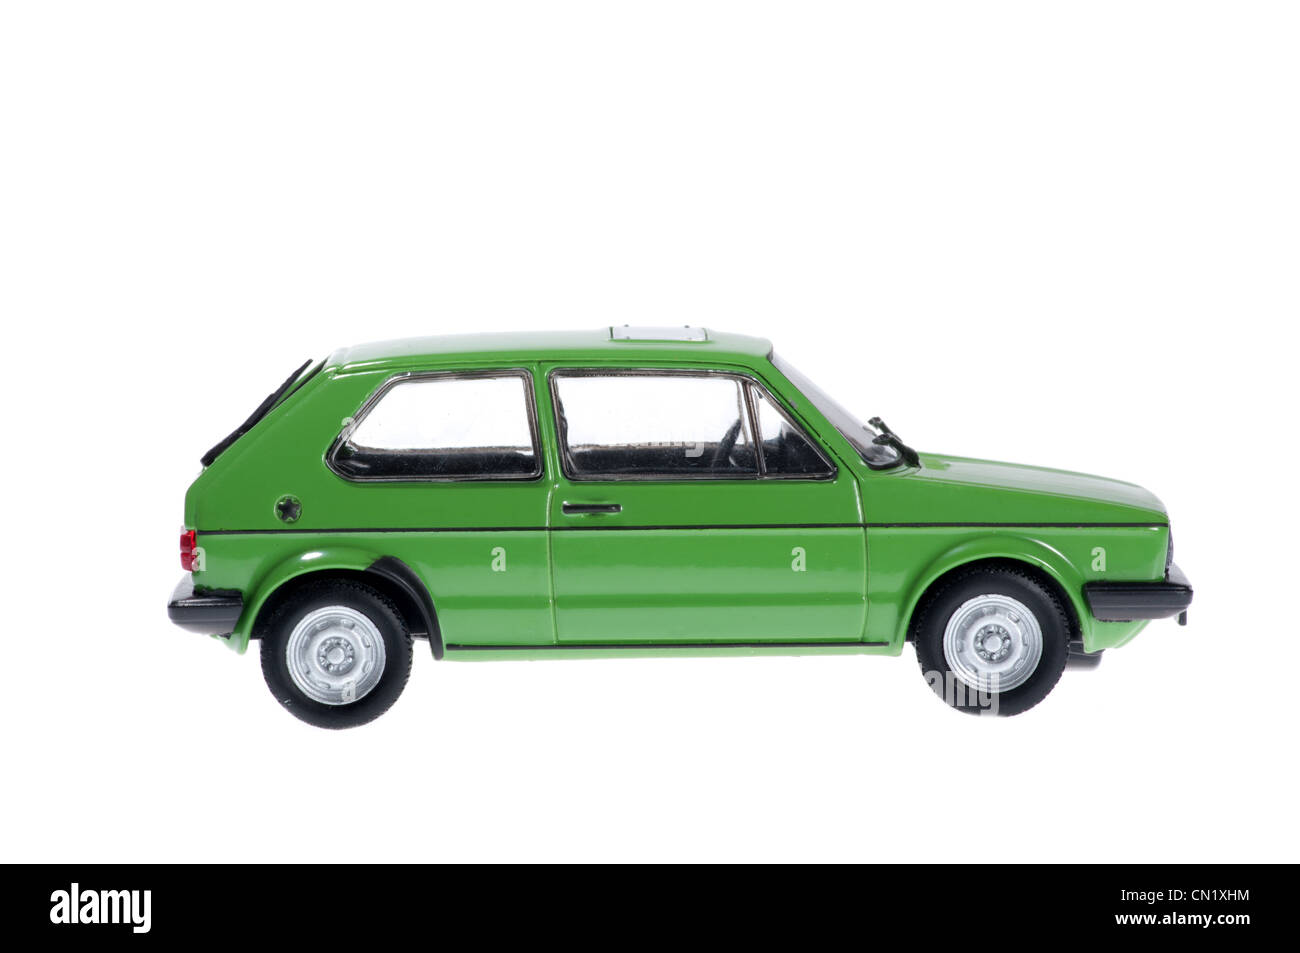 old model cars stock photos & old model cars stock images - alamy